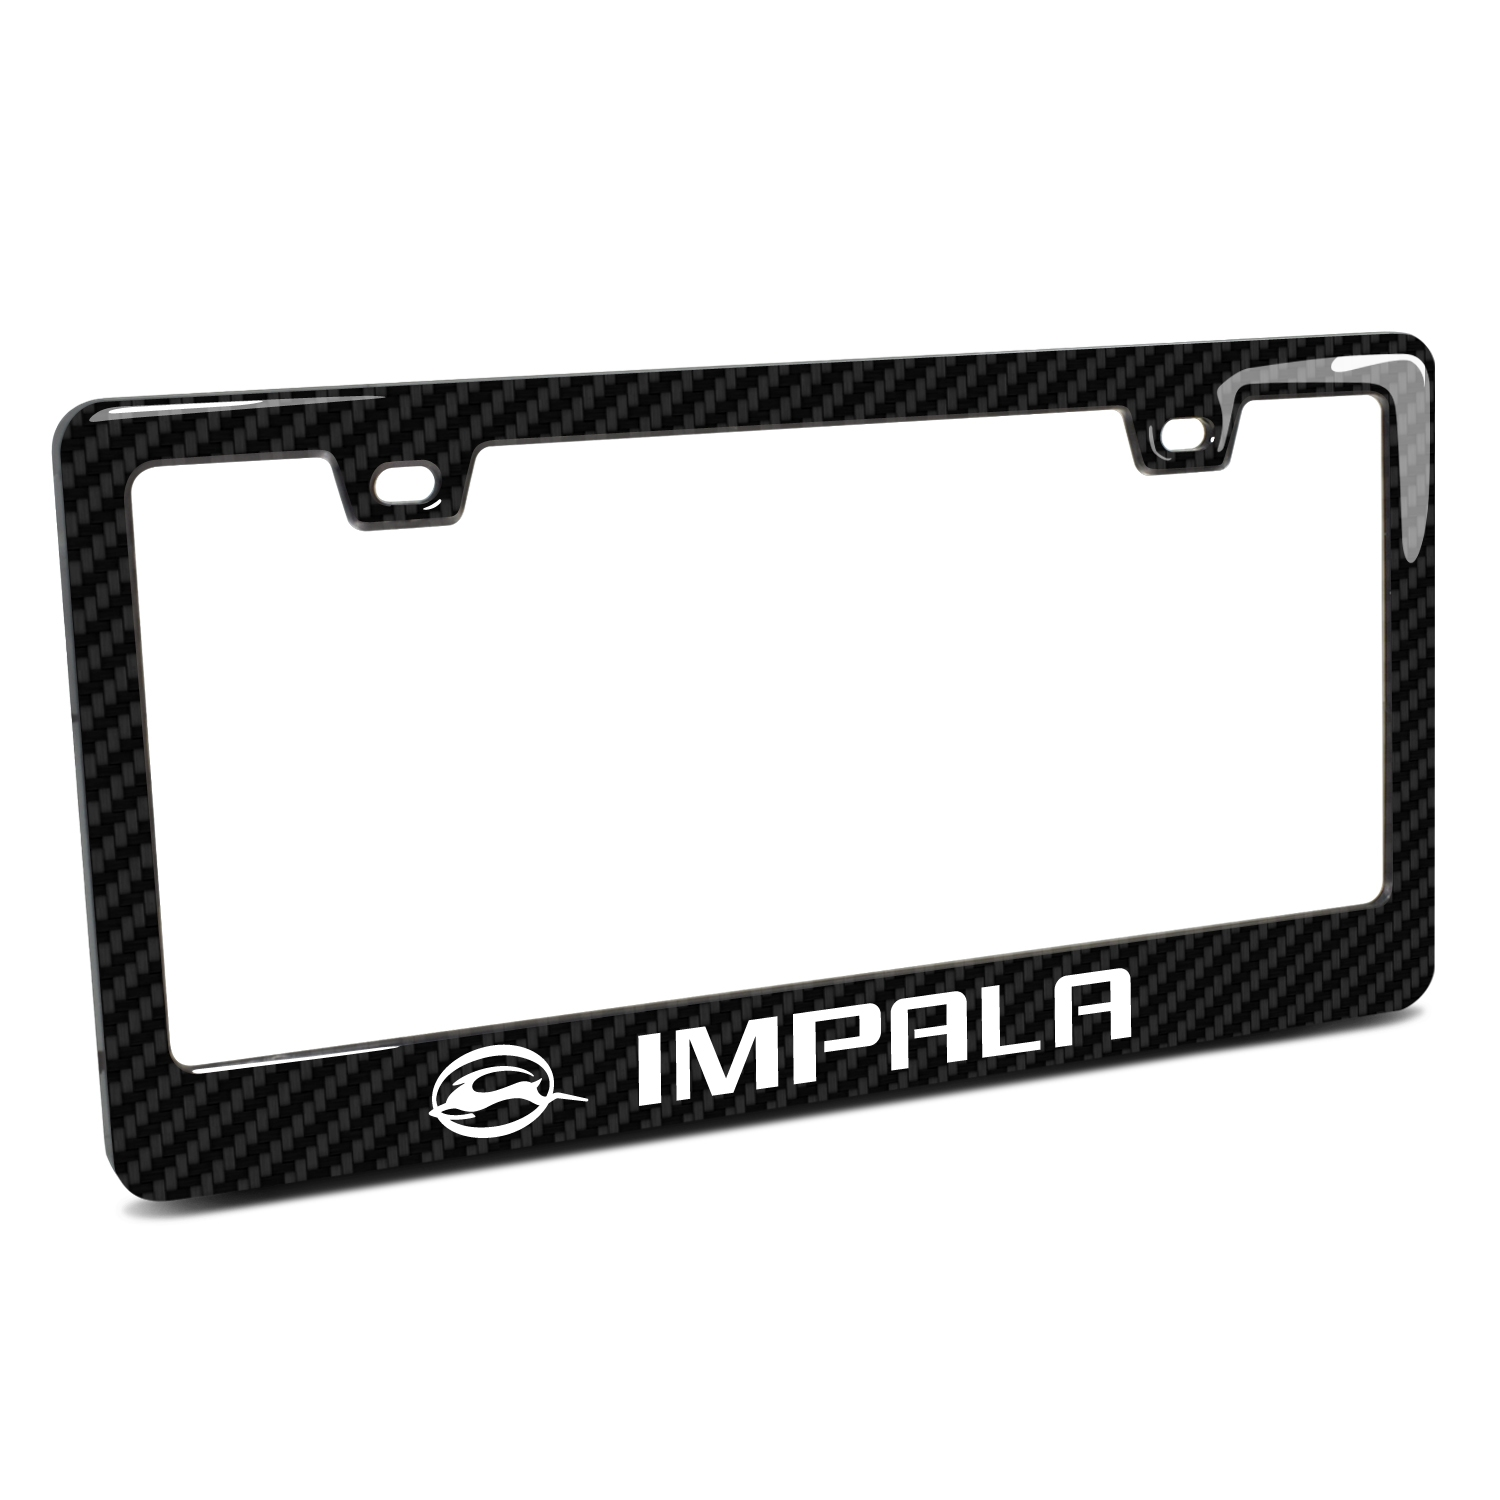 Chevrolet Impala in 3D on Real 3K Carbon Fiber Finish ABS Plastic License Plate Frame